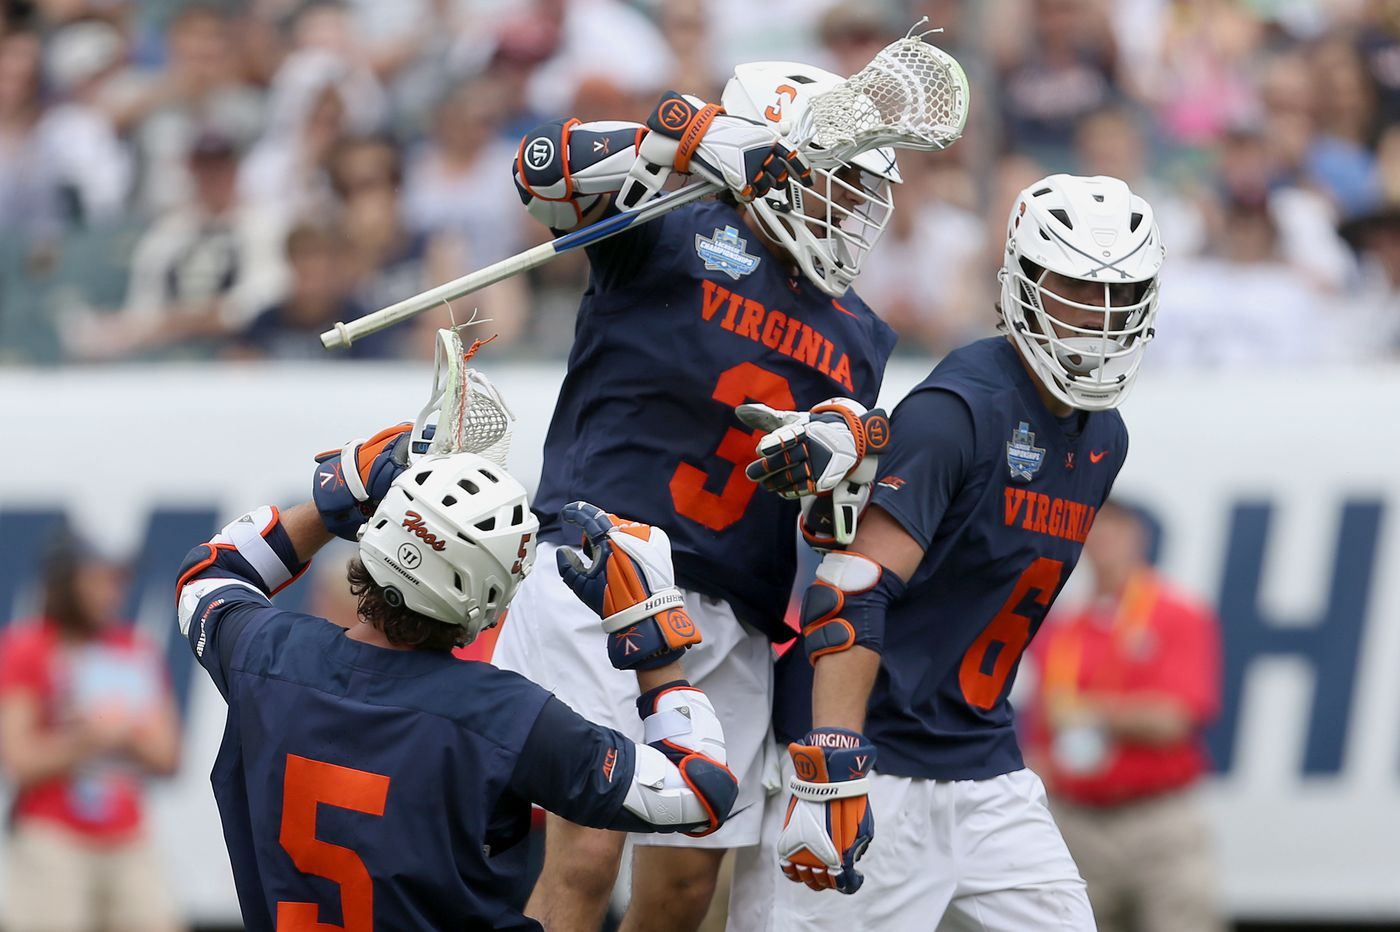 Virginia Defeats Yale, Captures Sixth Lacrosse National Championship